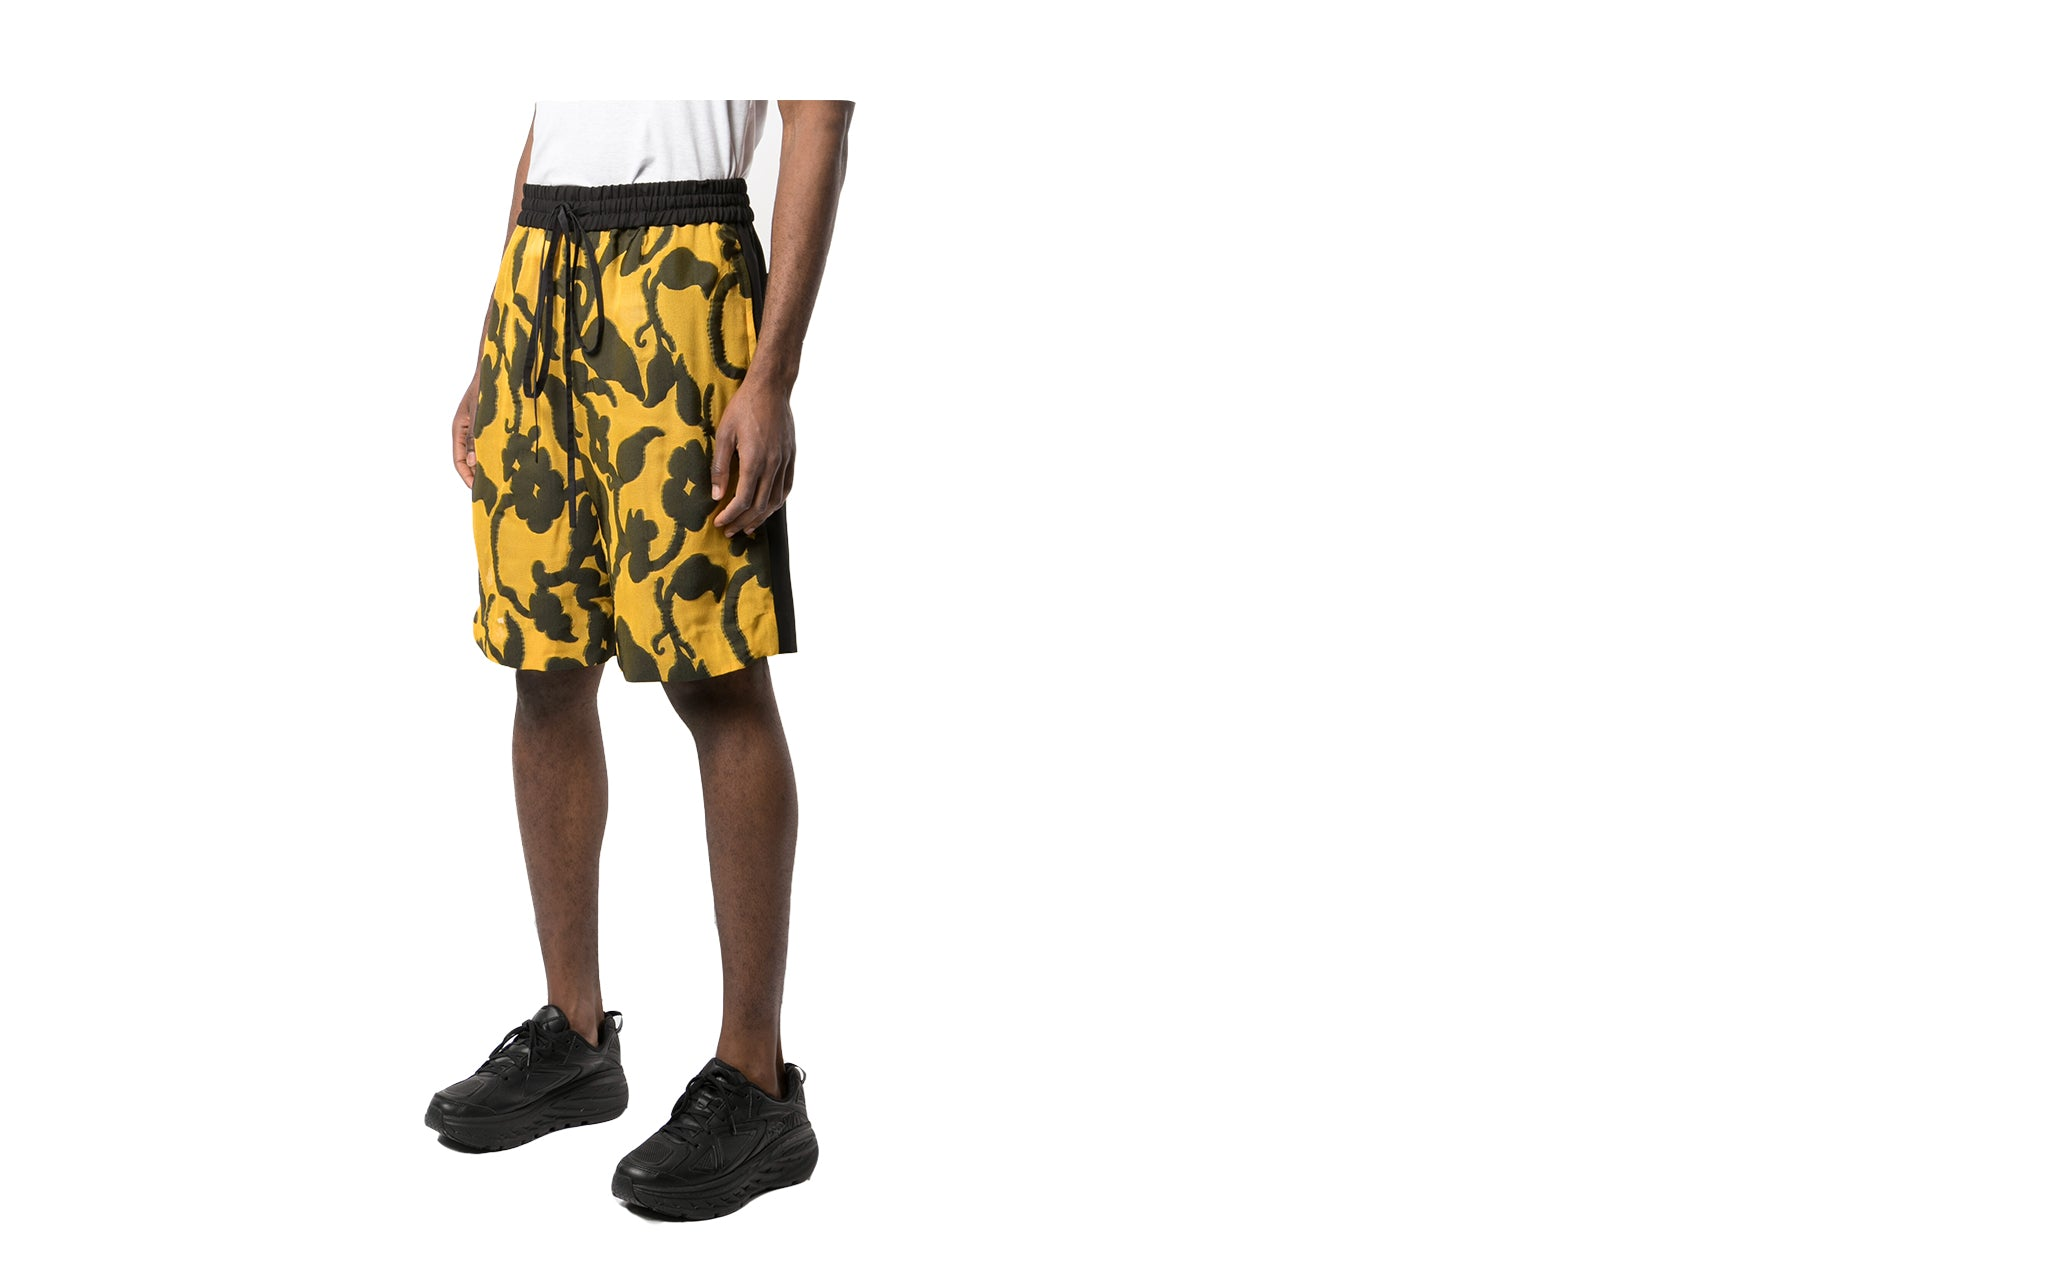 DRAWSTRING FIL COUPE SHORTS